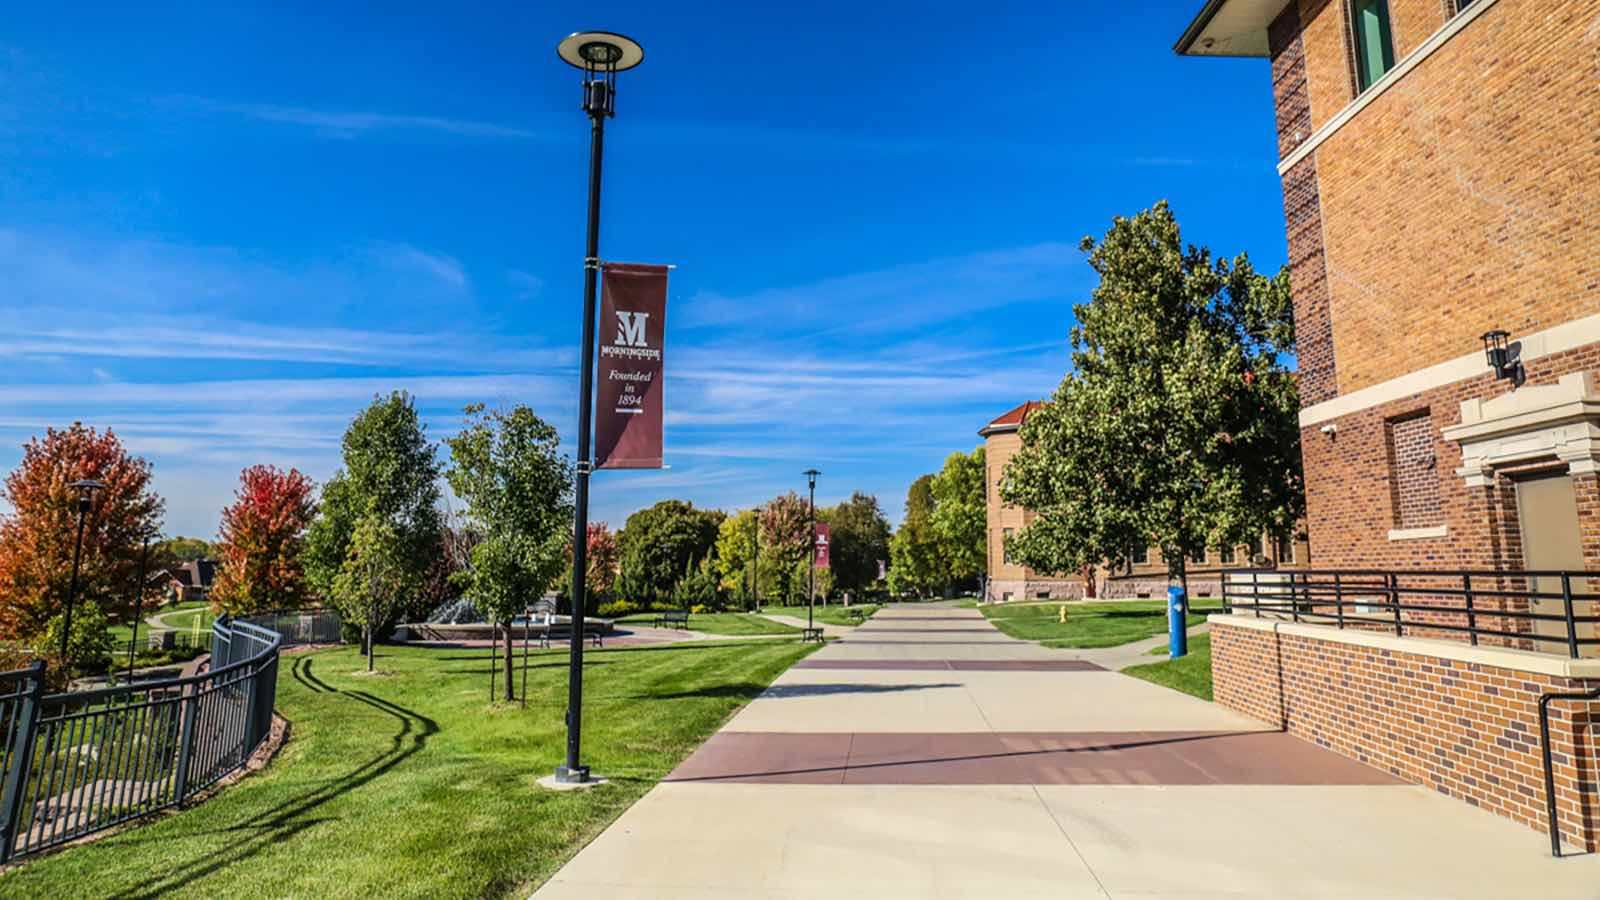 Morningside College campus